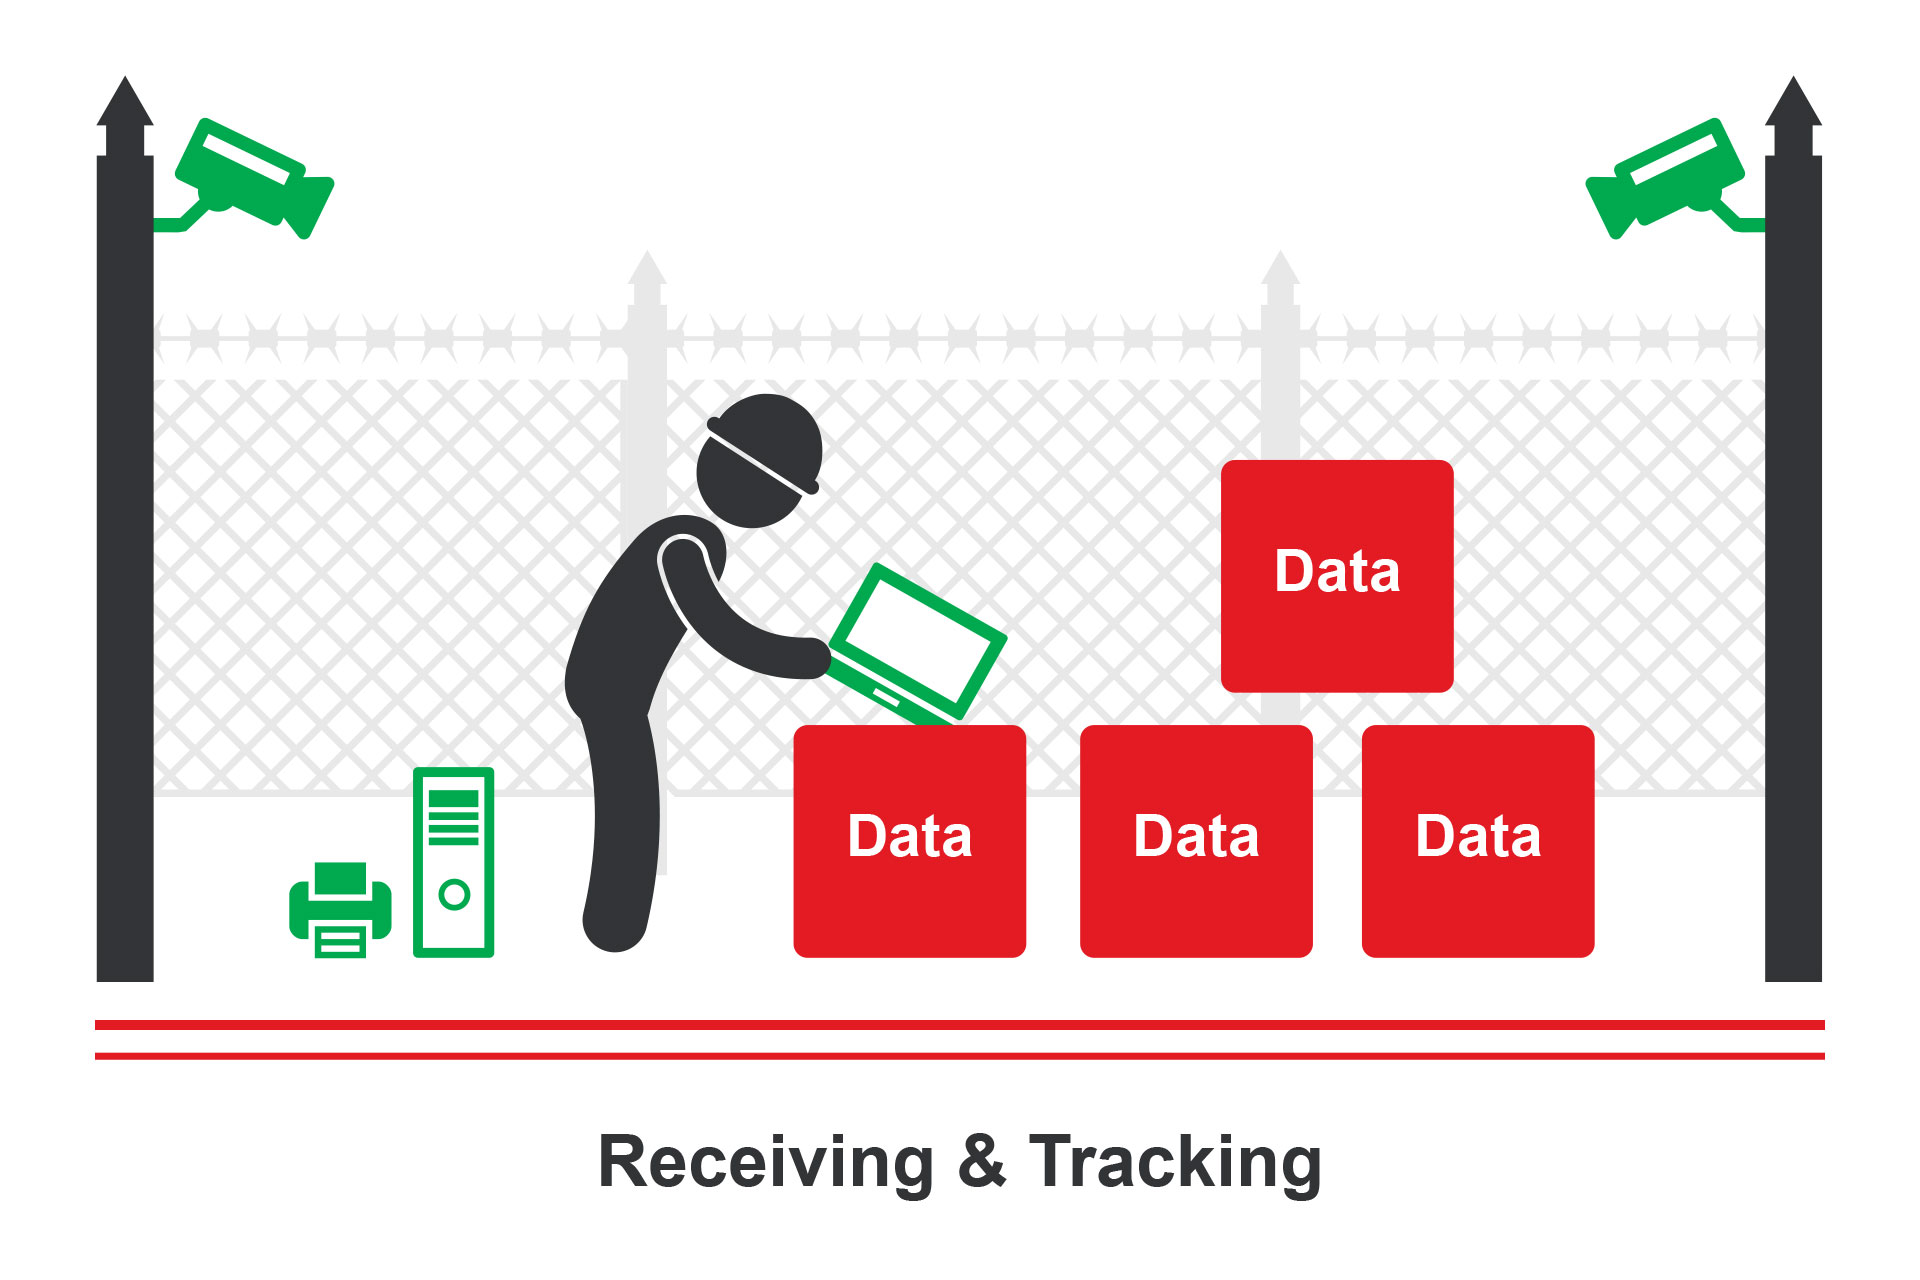 Receiving & Tracking